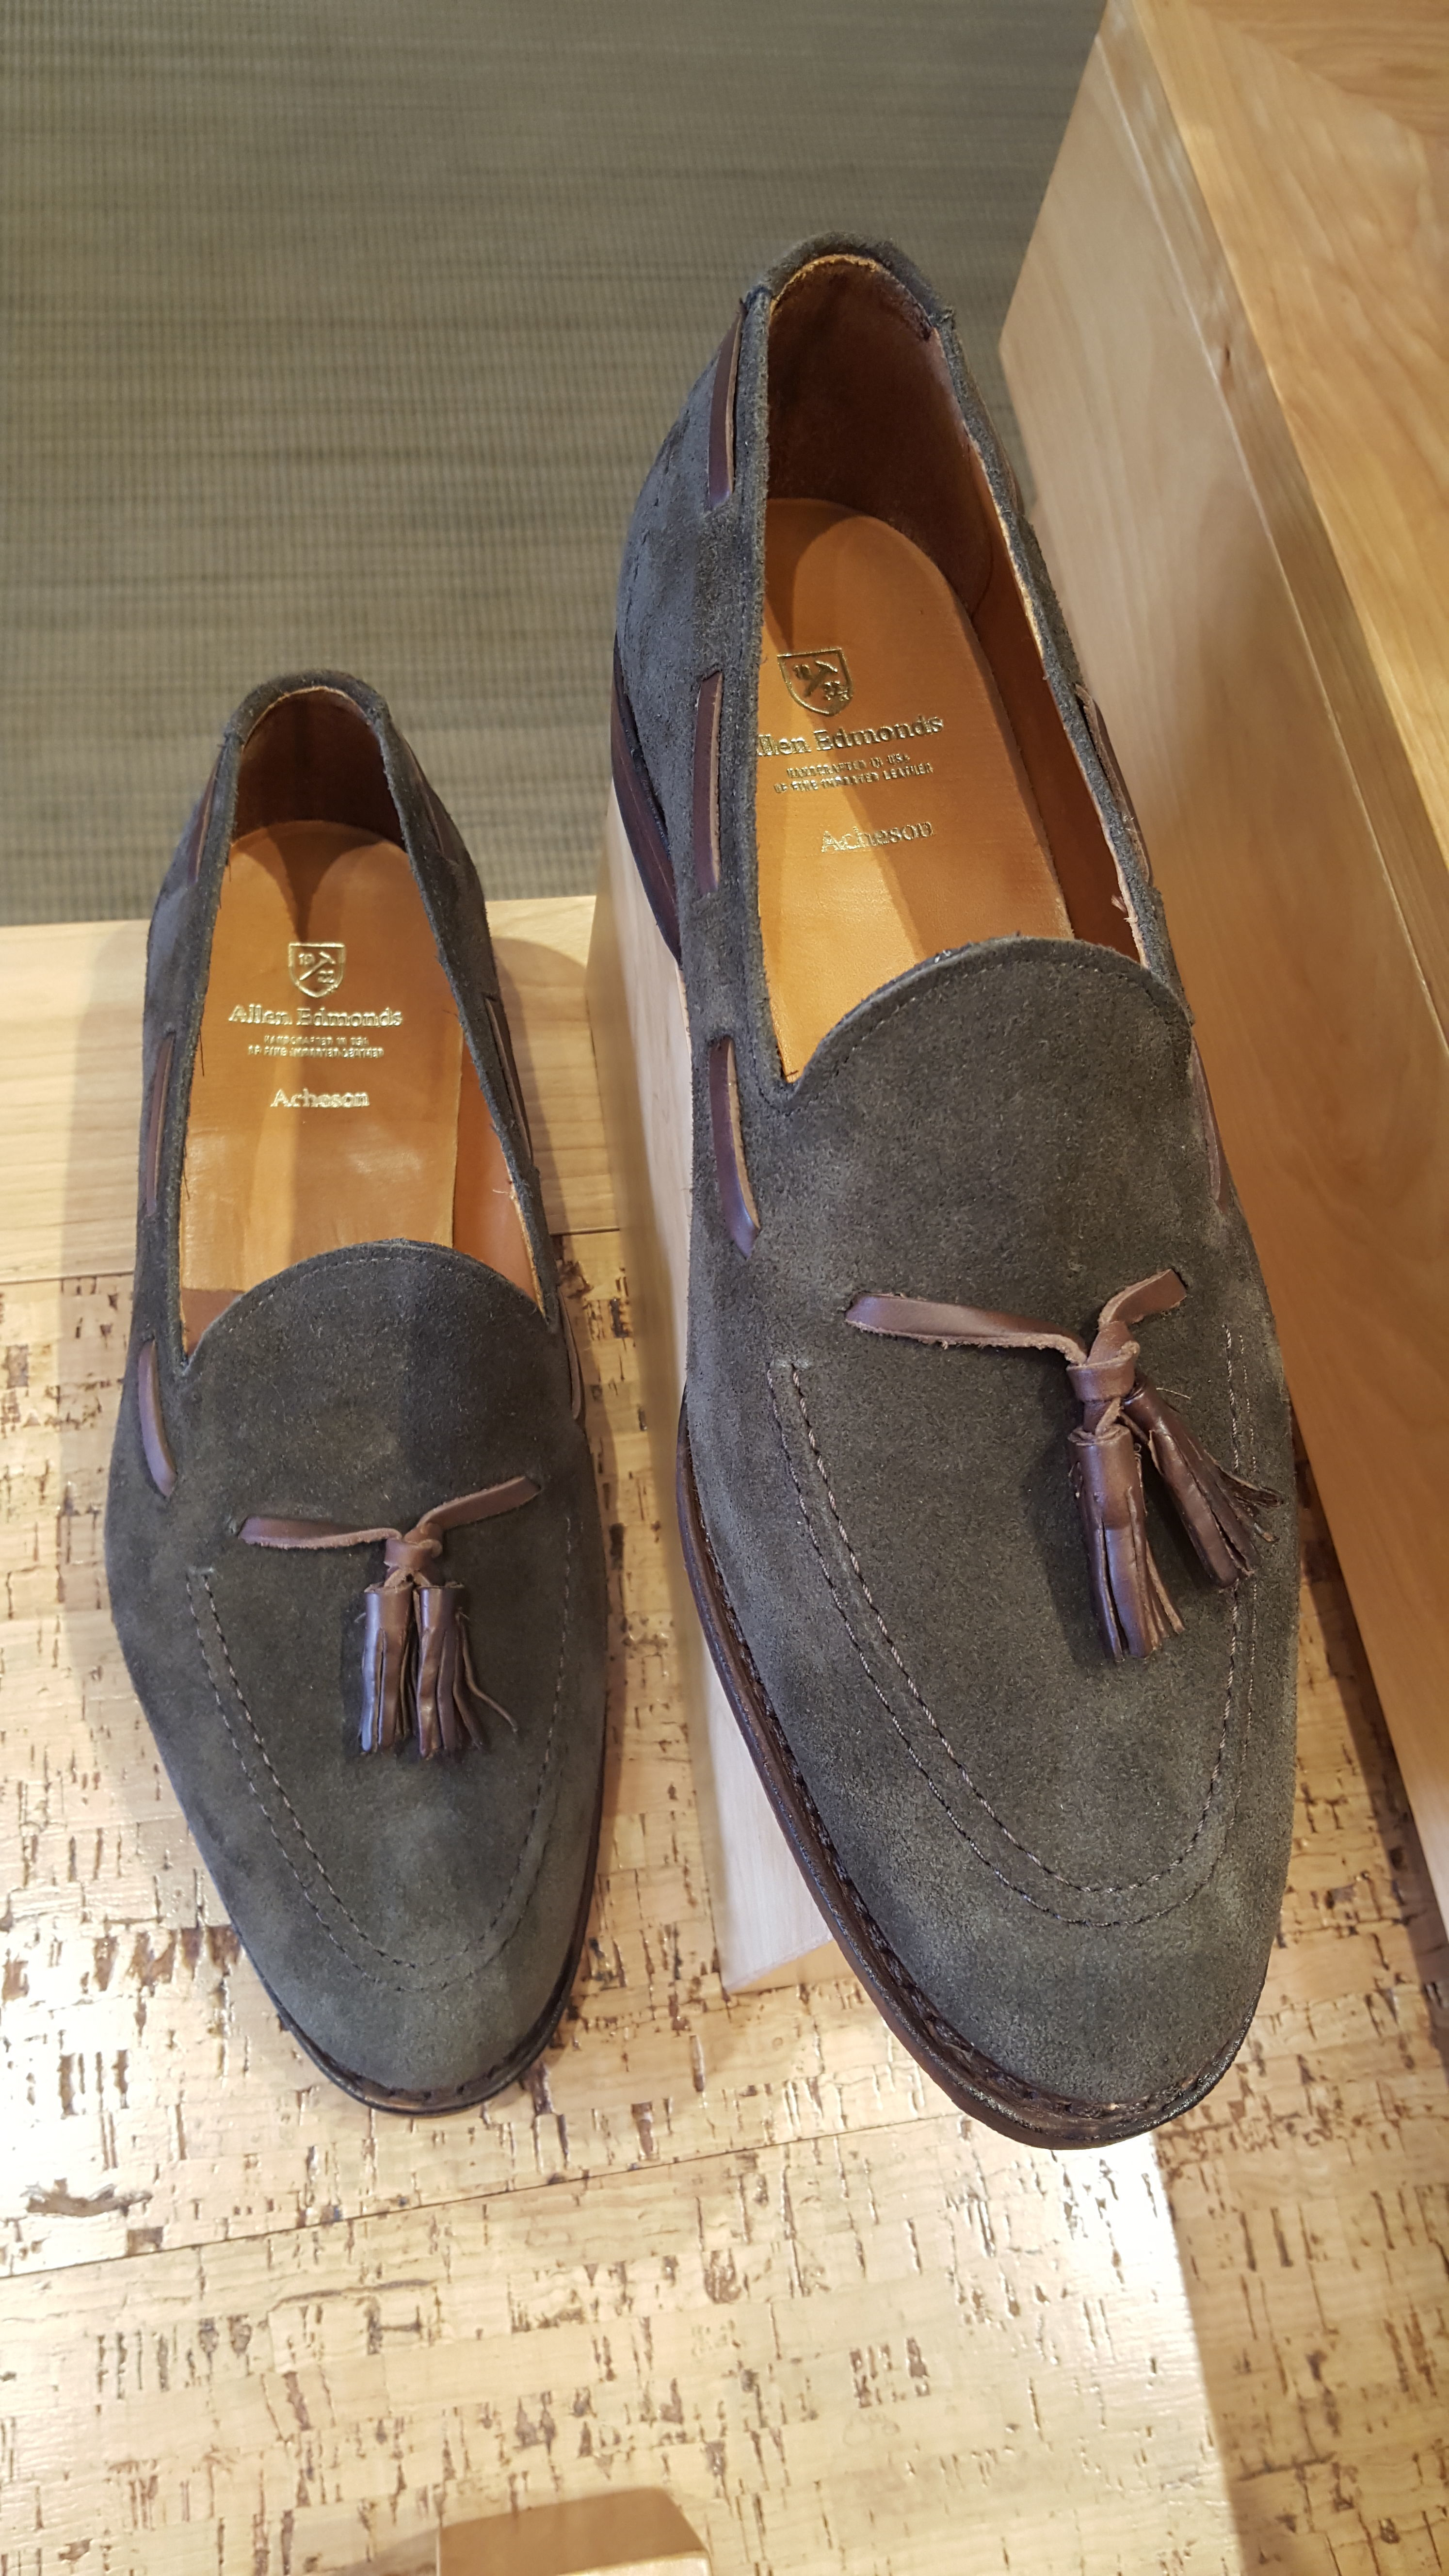 harlequin782's photos in Allen Edmonds Appreciation Thread 2016 - News, Pictures, Sizing, Accessories, Clothing, etc